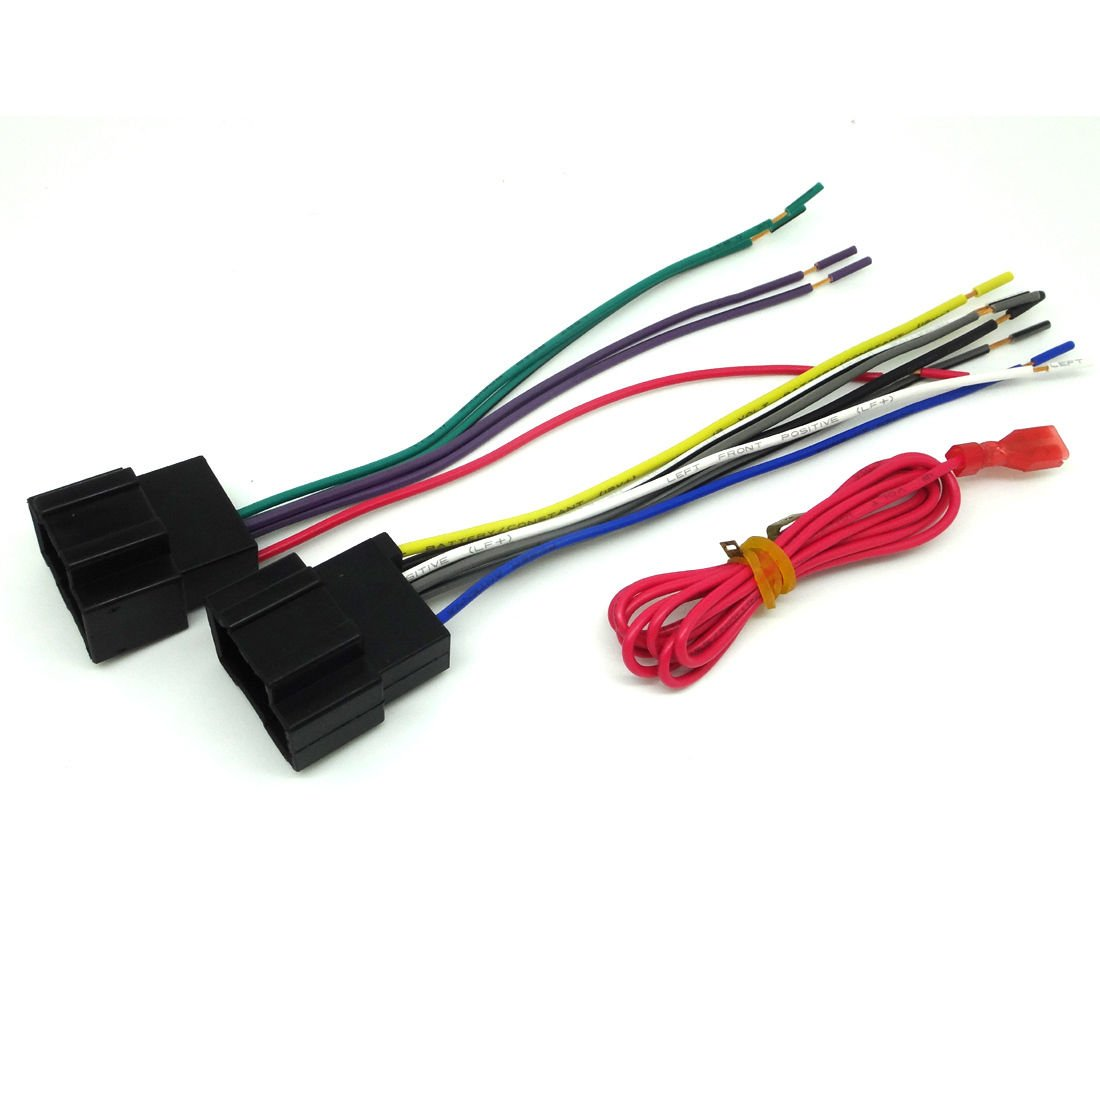 61nu0LRNVFL._SL1100_ amazon com gm car stereo cd player wiring harness wire harness wire for car stereo at gsmx.co